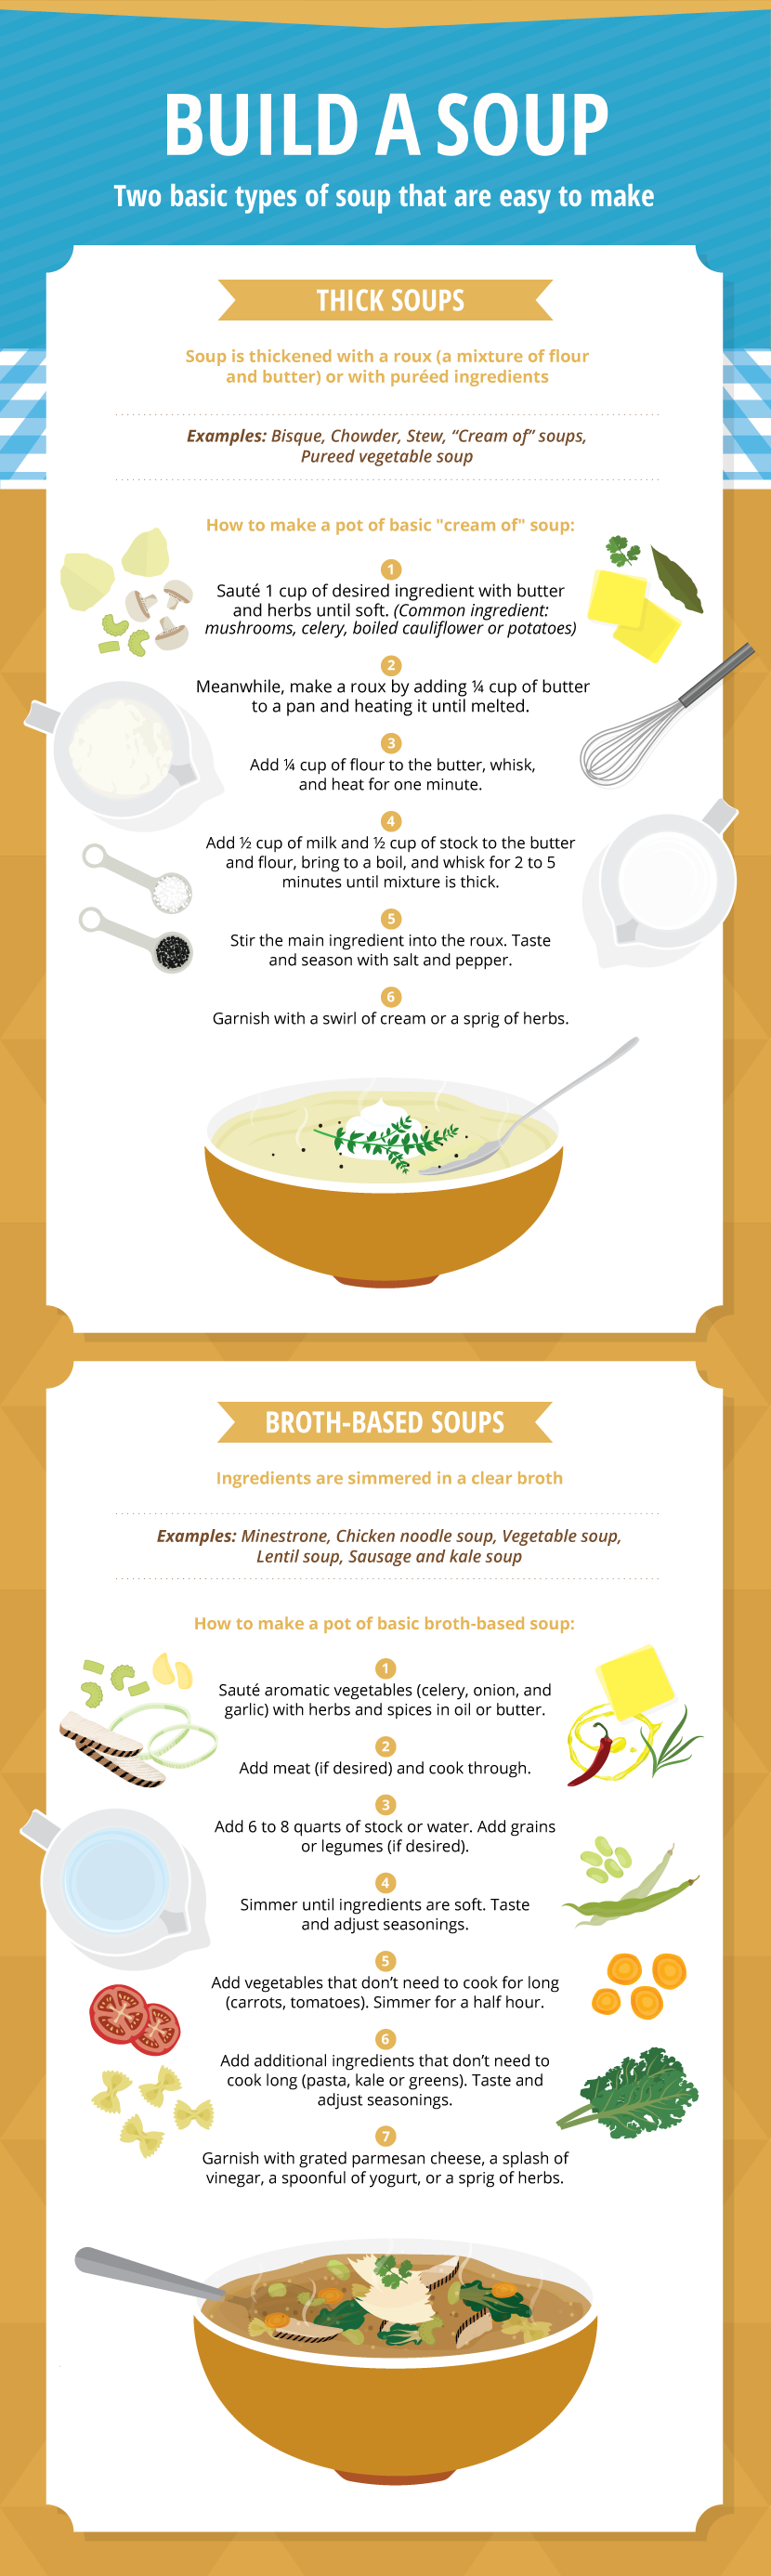 Build a Soup - Welcome Soup to the Breakfast Table